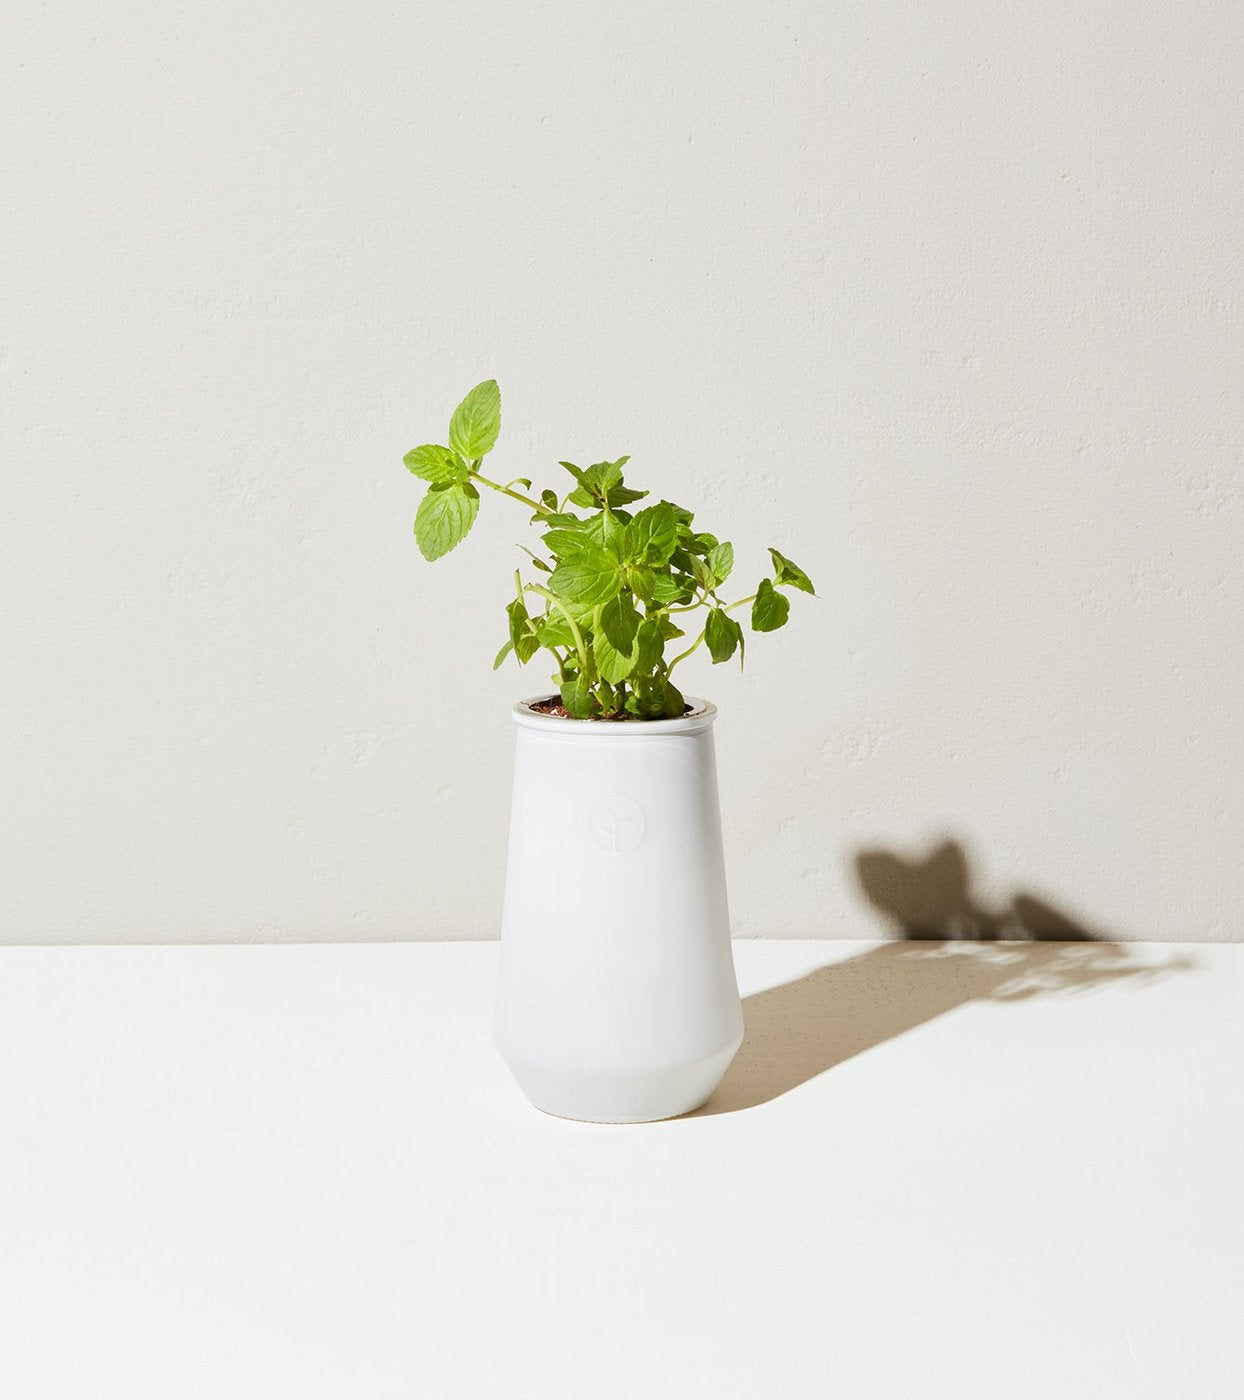 Tapered Tumbler with Mint Plant